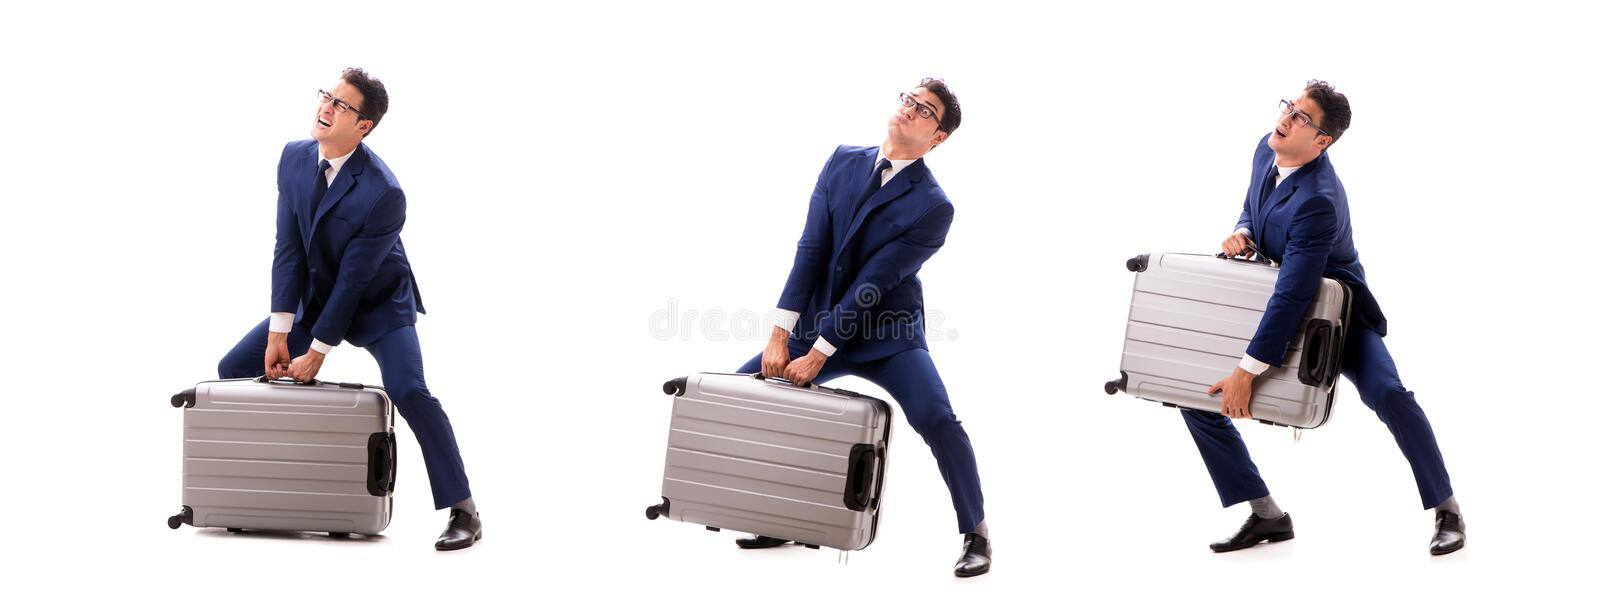 The businessman facing excess charges due to heavy suitcase. Businessman facing excess charges due to heavy suitcase royalty free stock photos